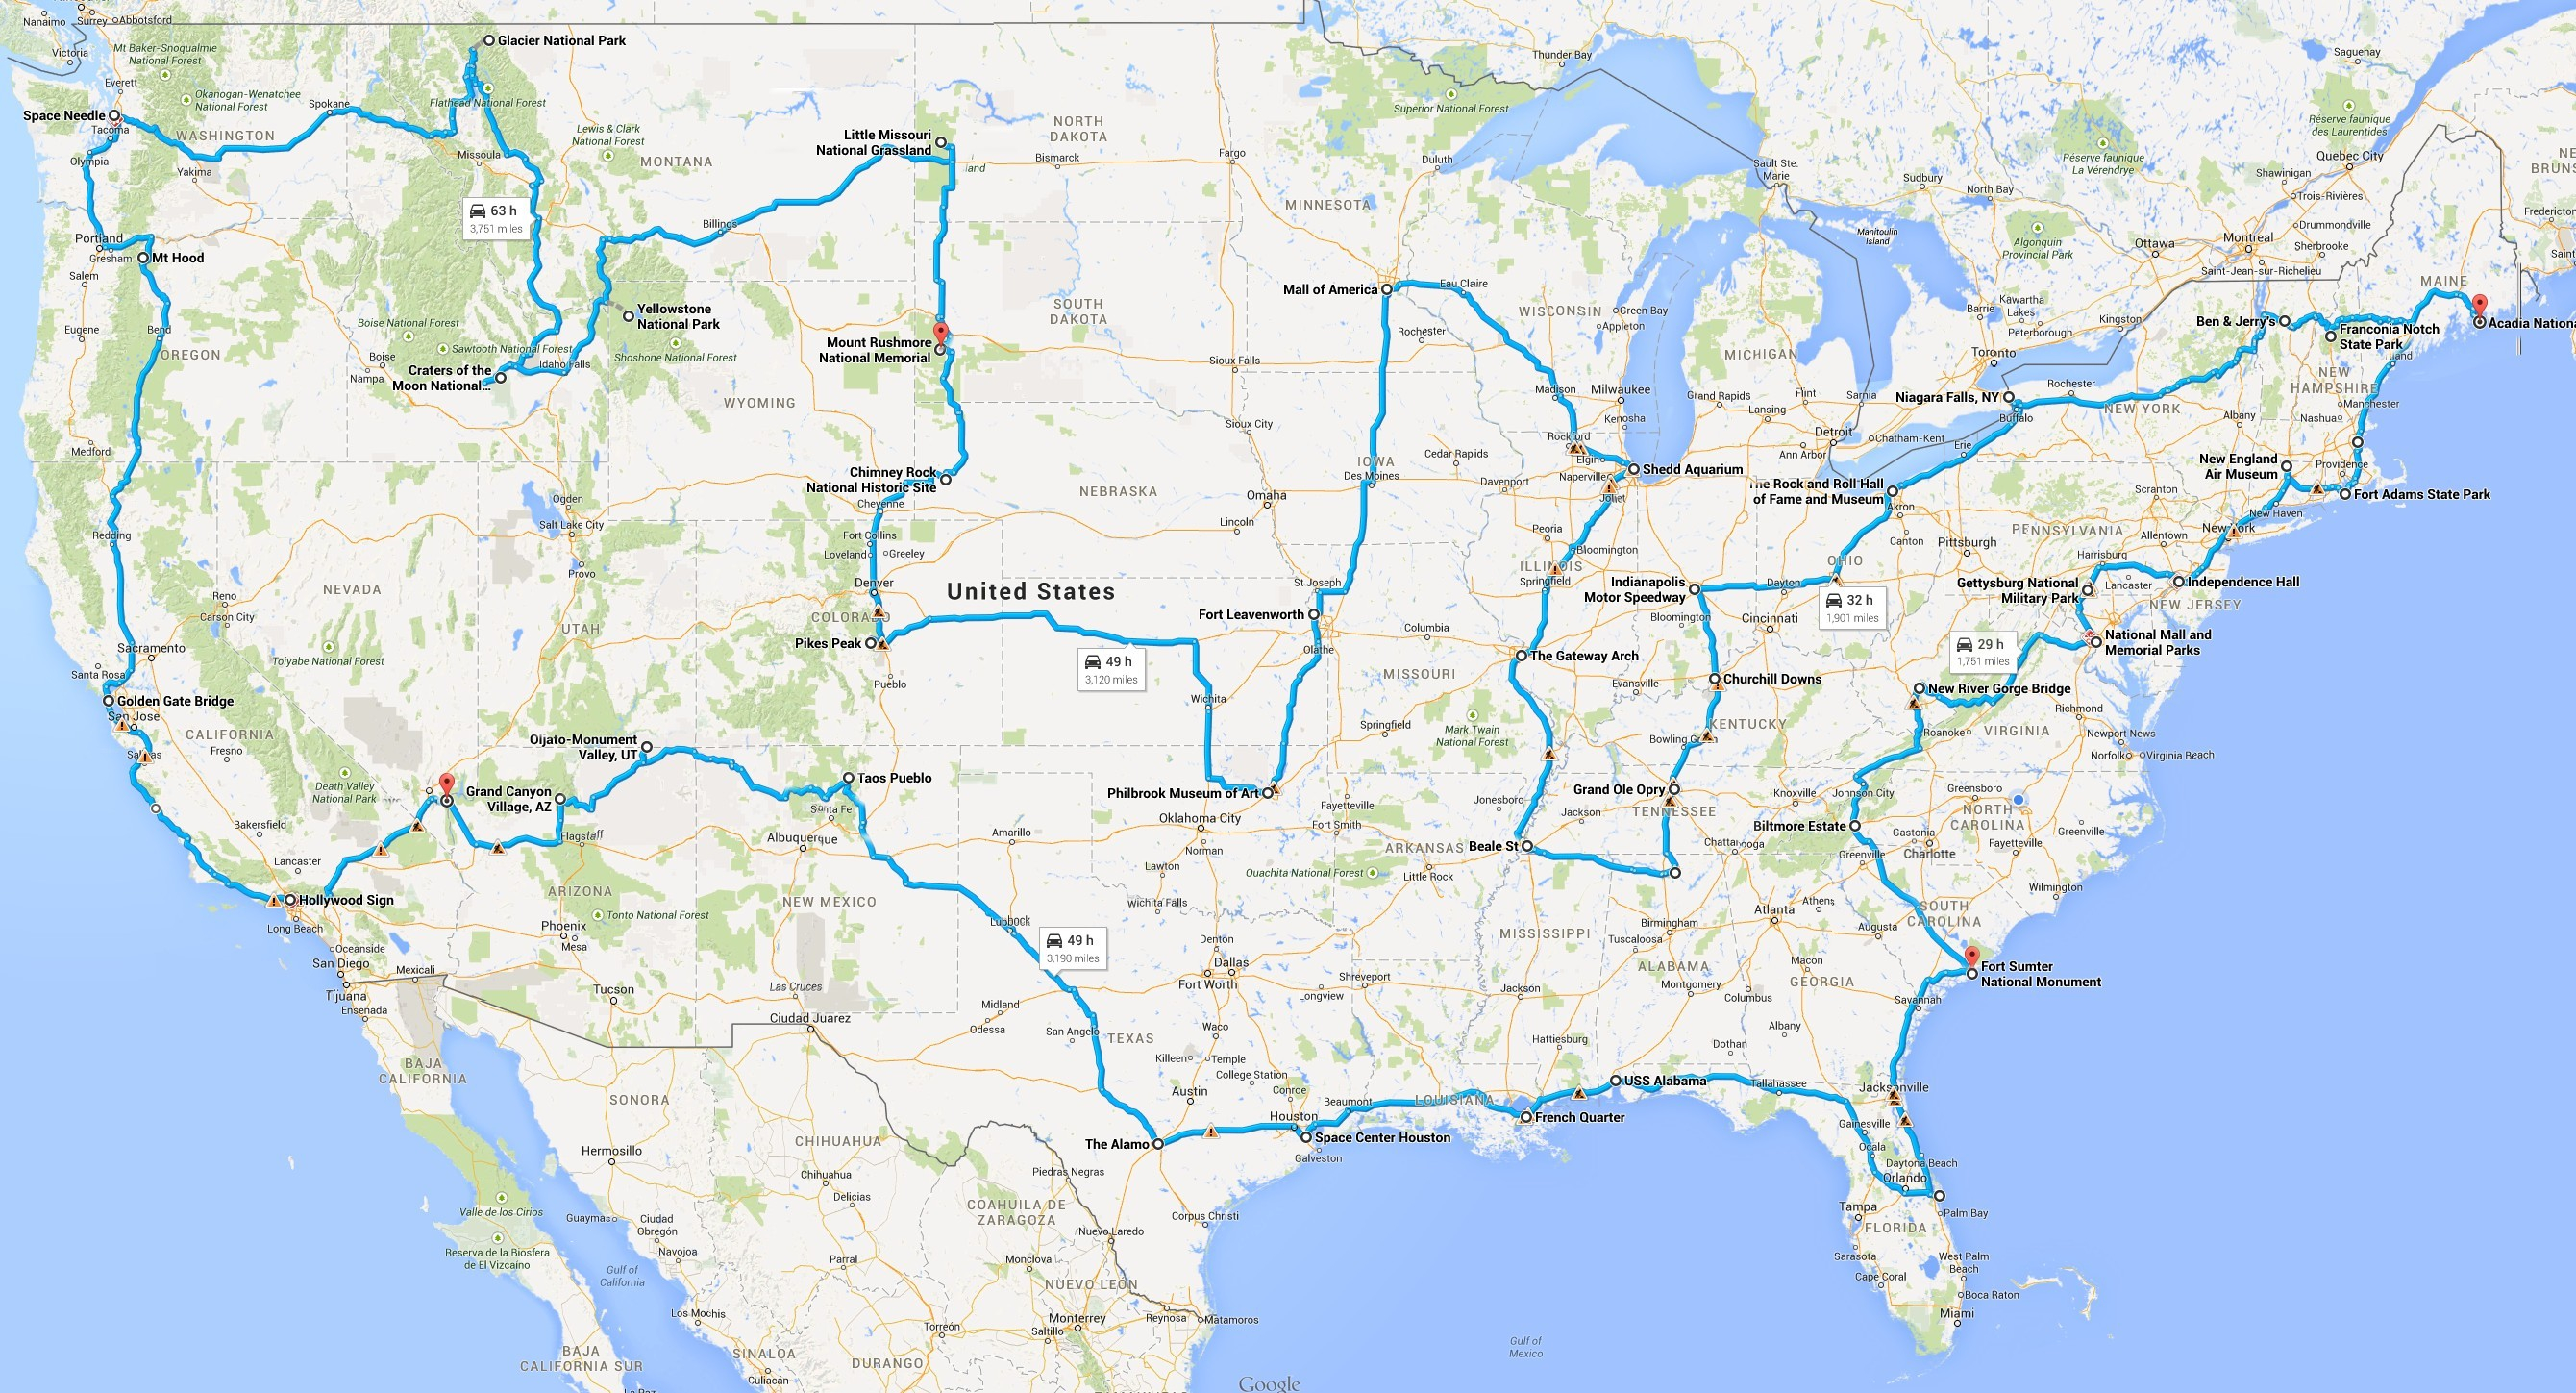 Google Map Of World Download New Maps Usa States Florida And 7 - Google Maps Florida Usa